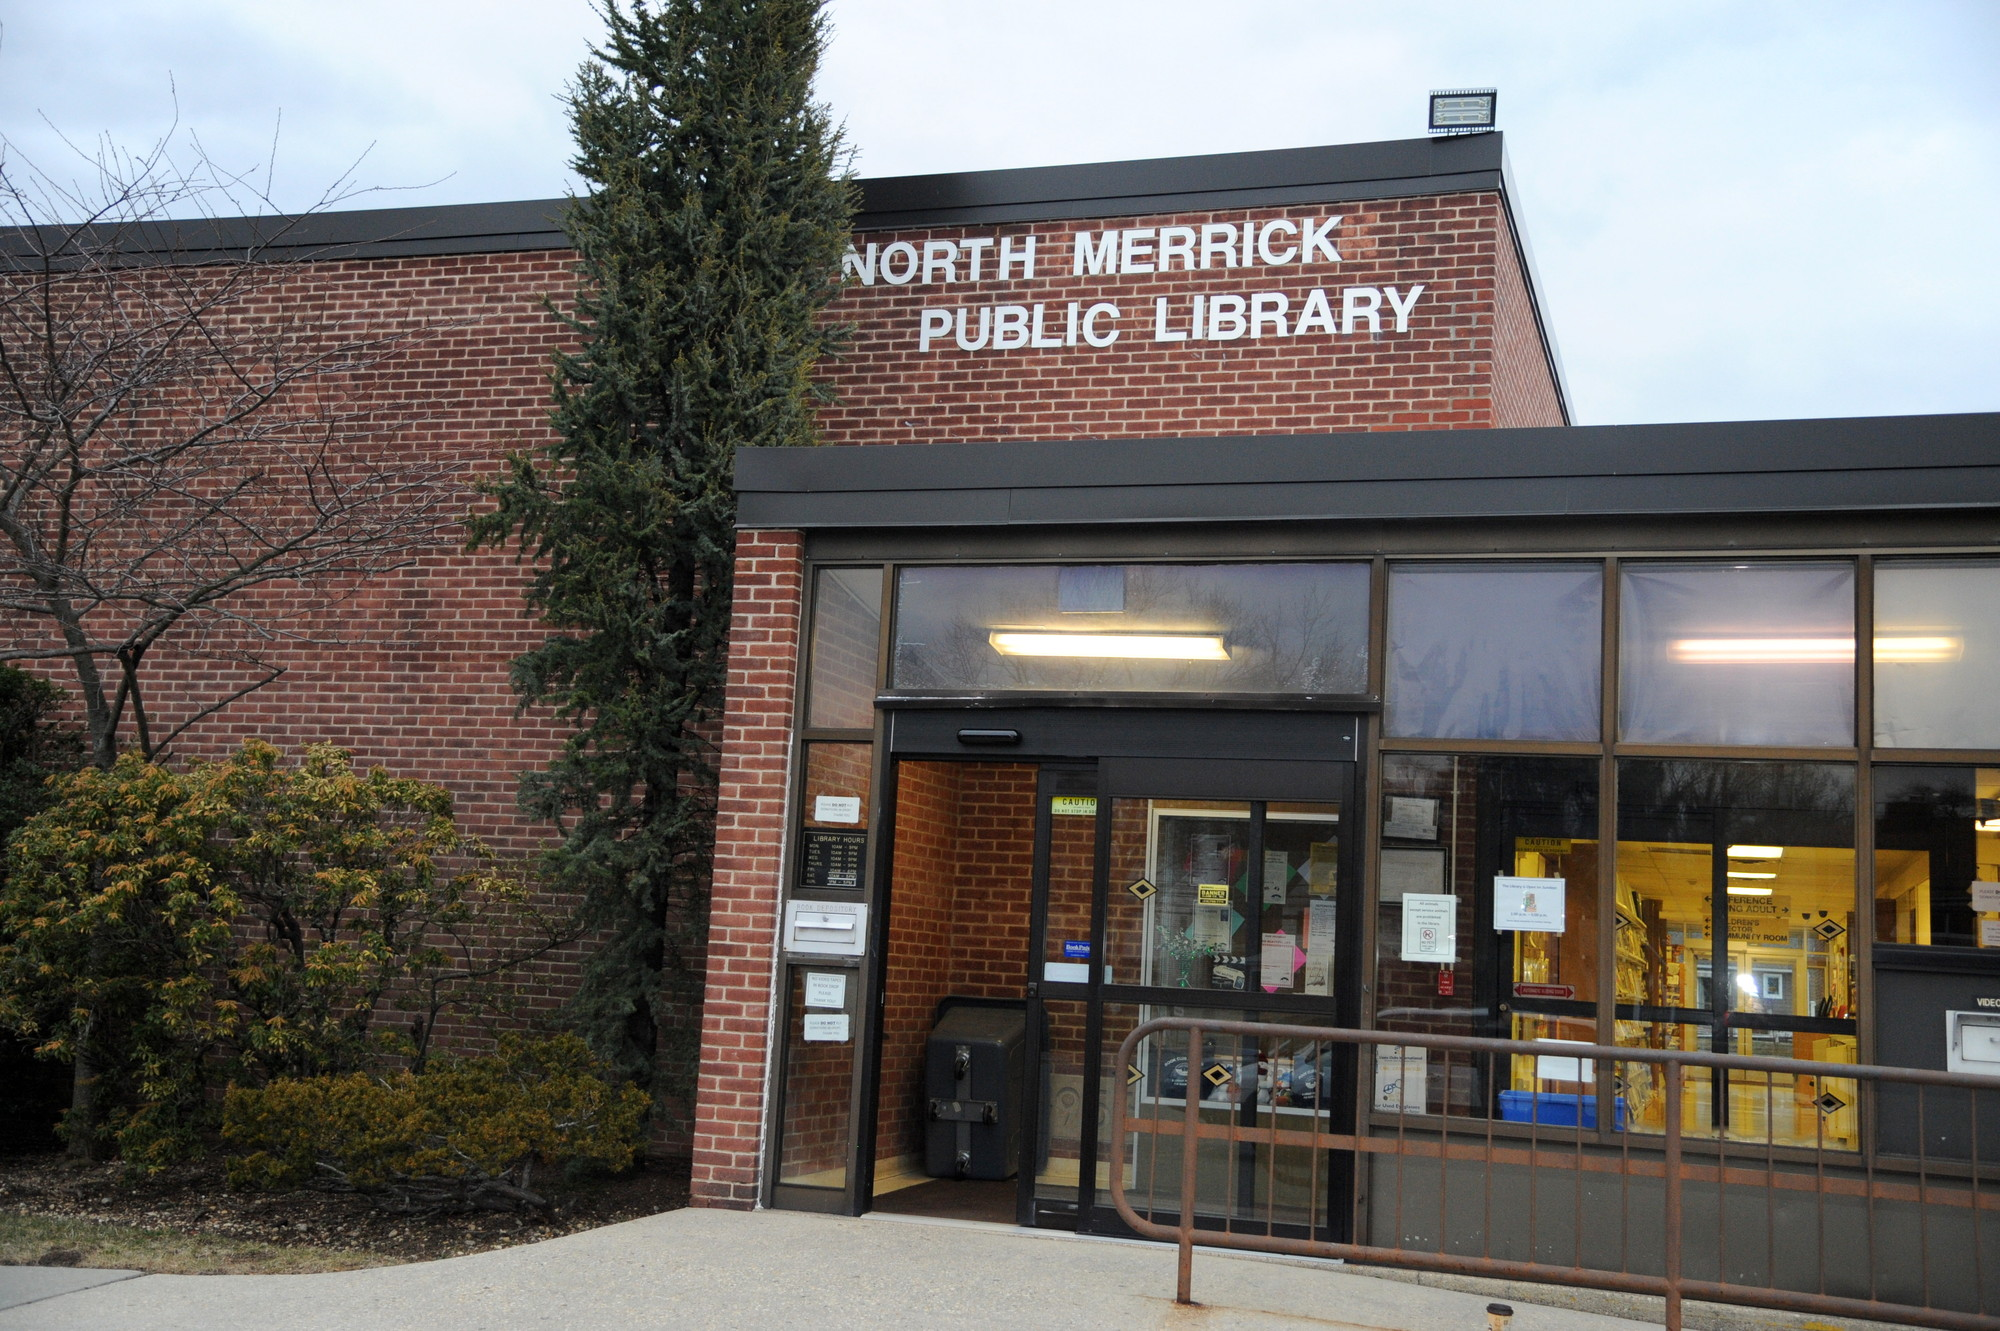 North Merrick residents passed the North Merrick Public Library's budget for 2014-15. The budget includes more funding for the Library's operating expenses and employee costs. It also marginally increases funding for services. It decreases funding for materials.